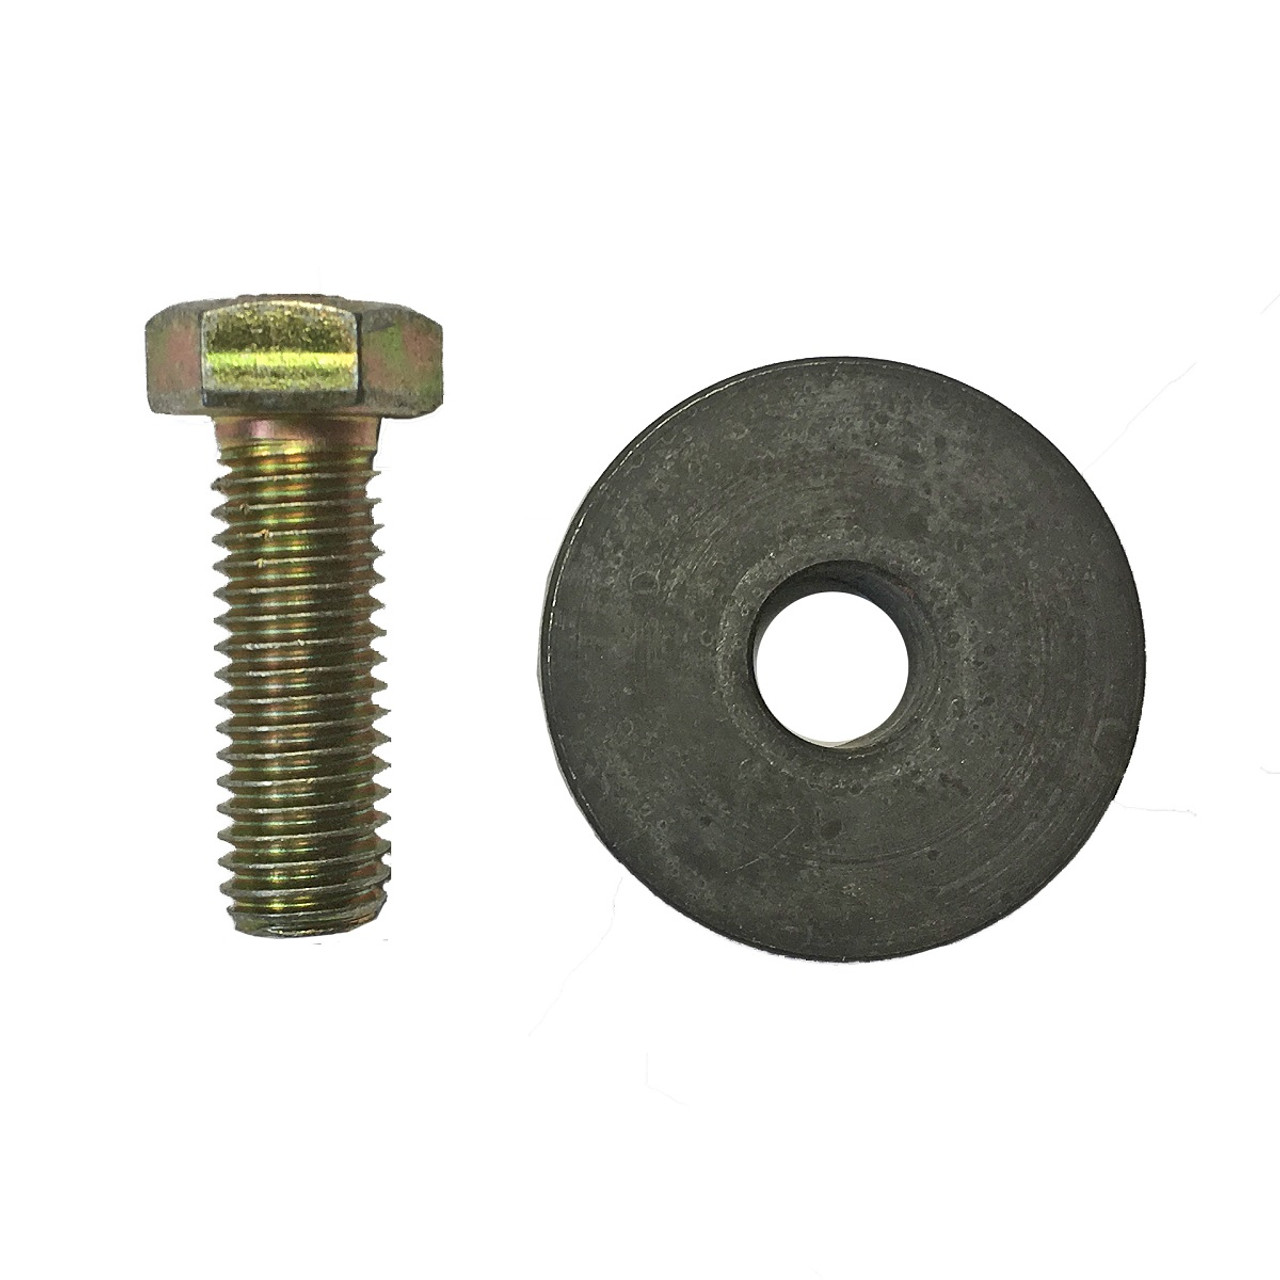 FRONT CRANKSHAFT PULLEY WASHER & BOLT